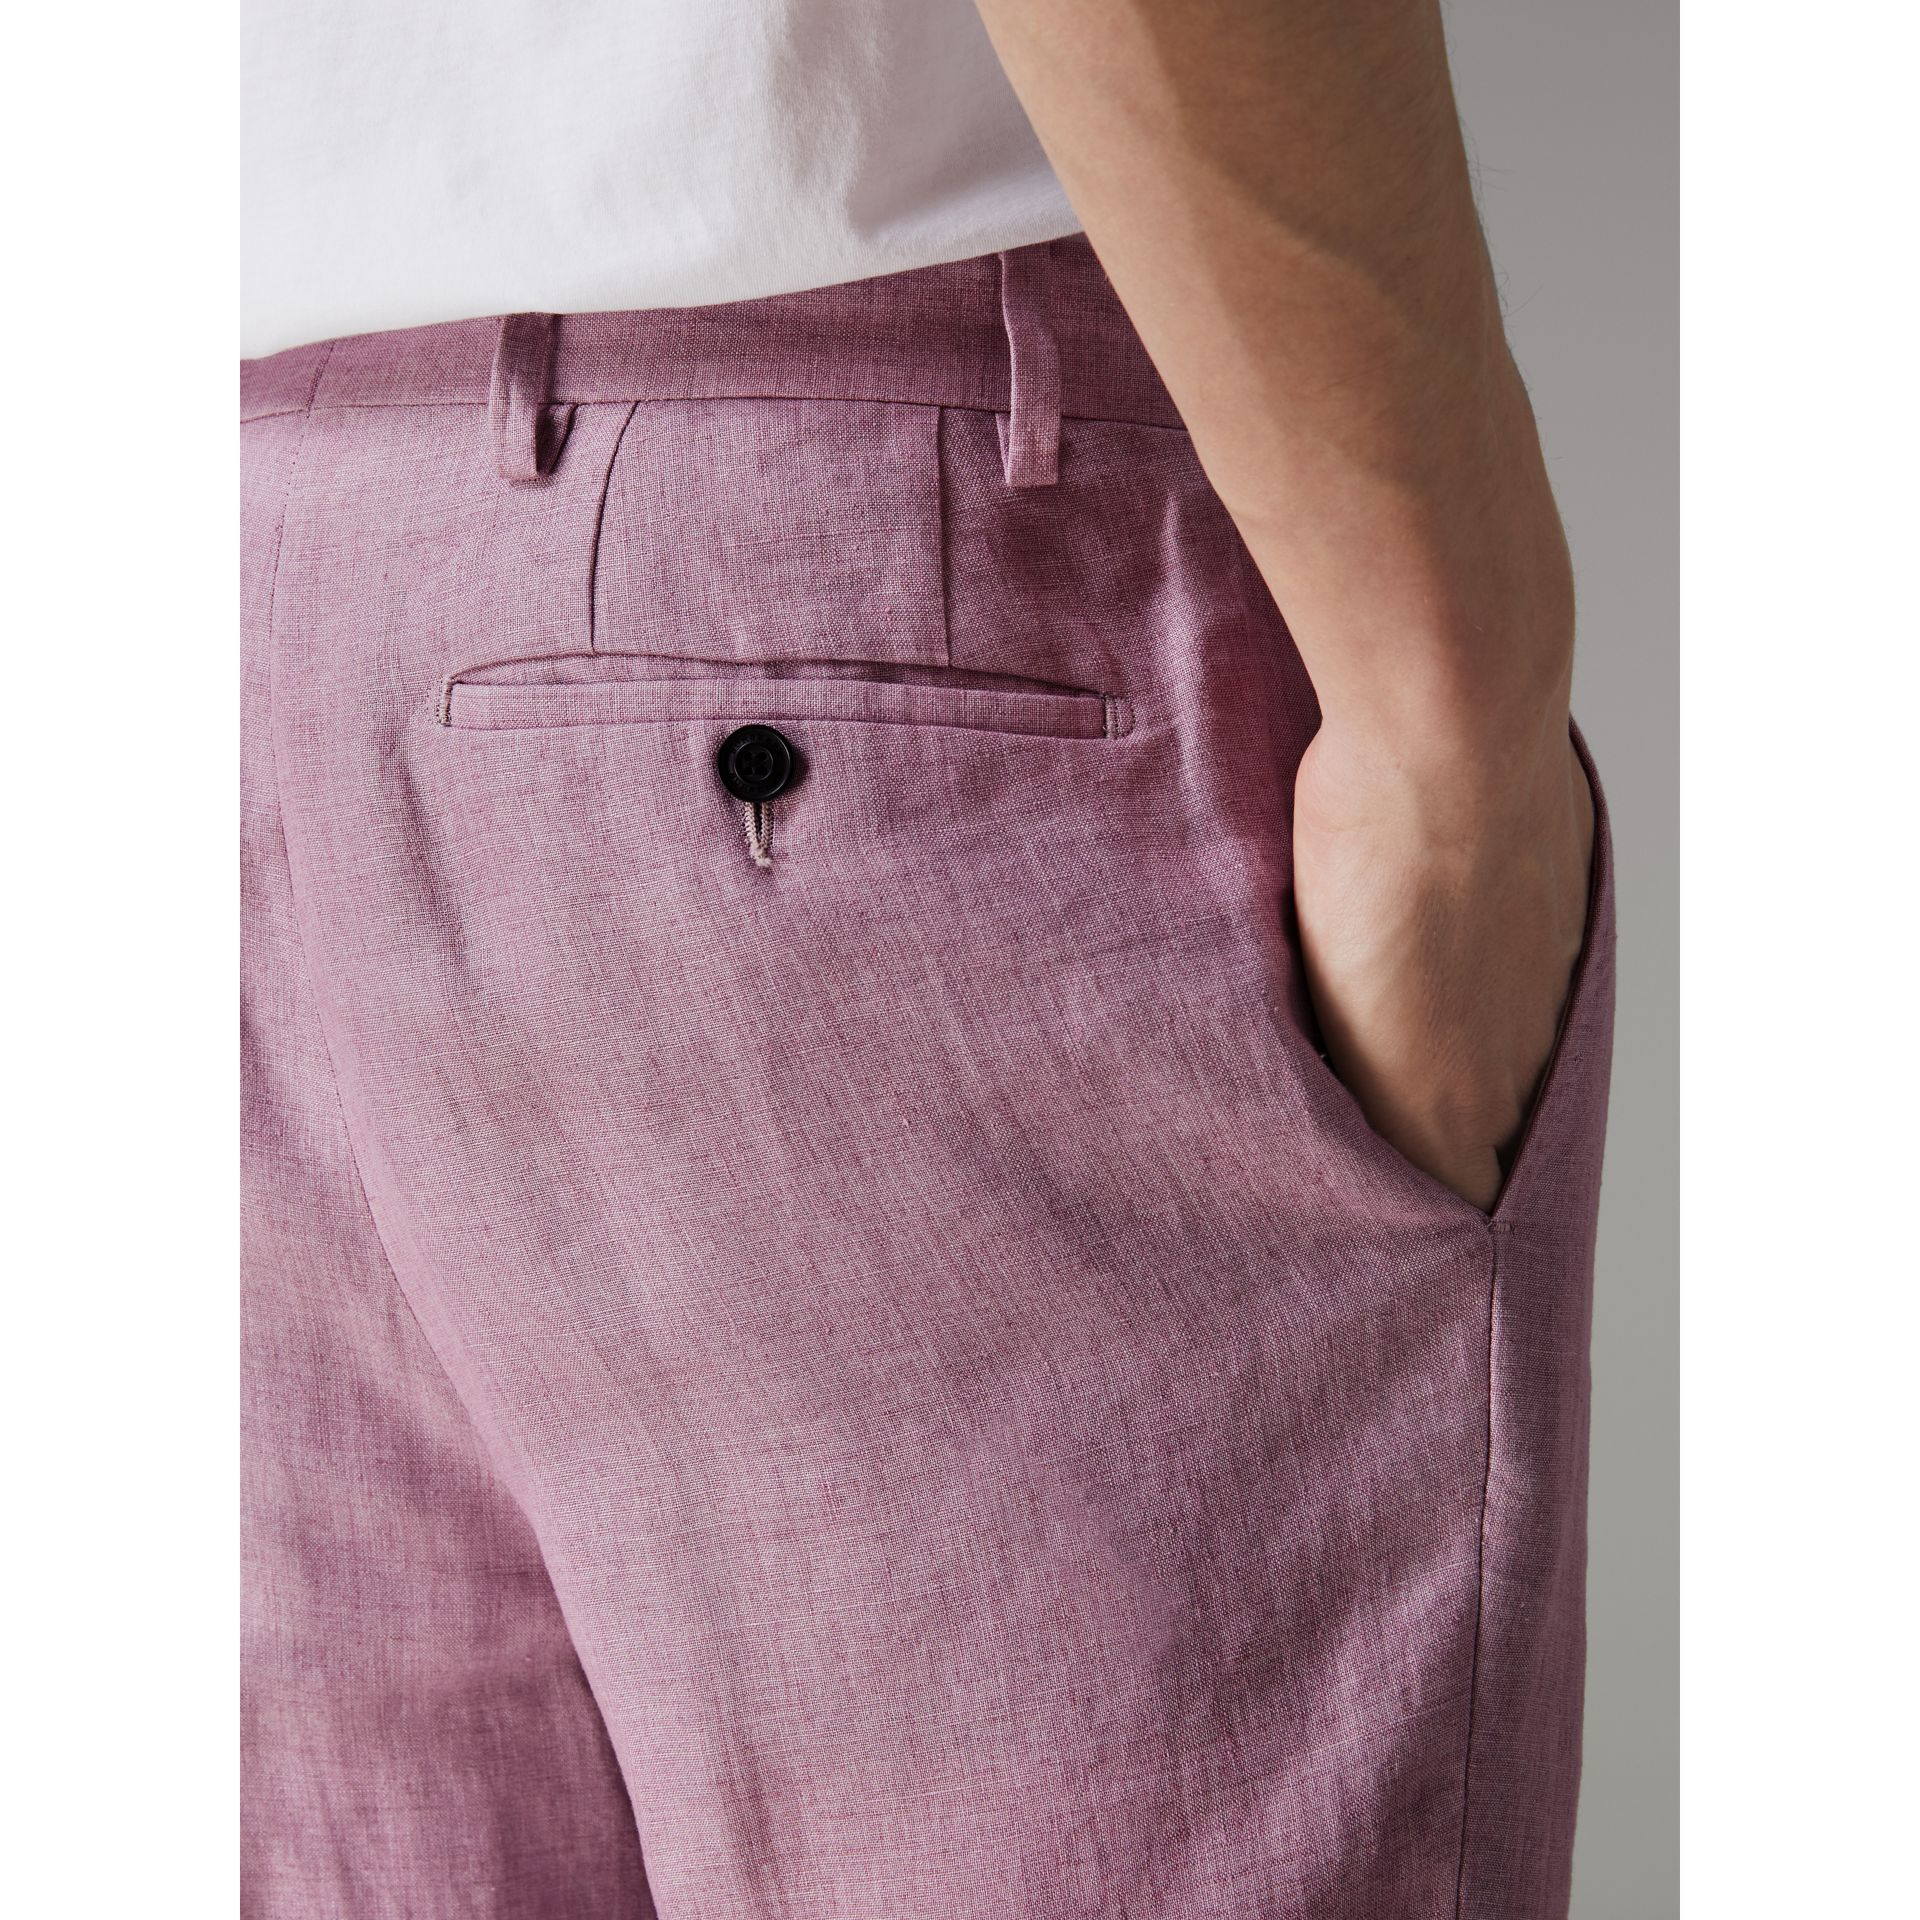 Pantalon de coupe Soho en lin (Pourpre Rose) - Homme | Burberry - photo de la galerie 1